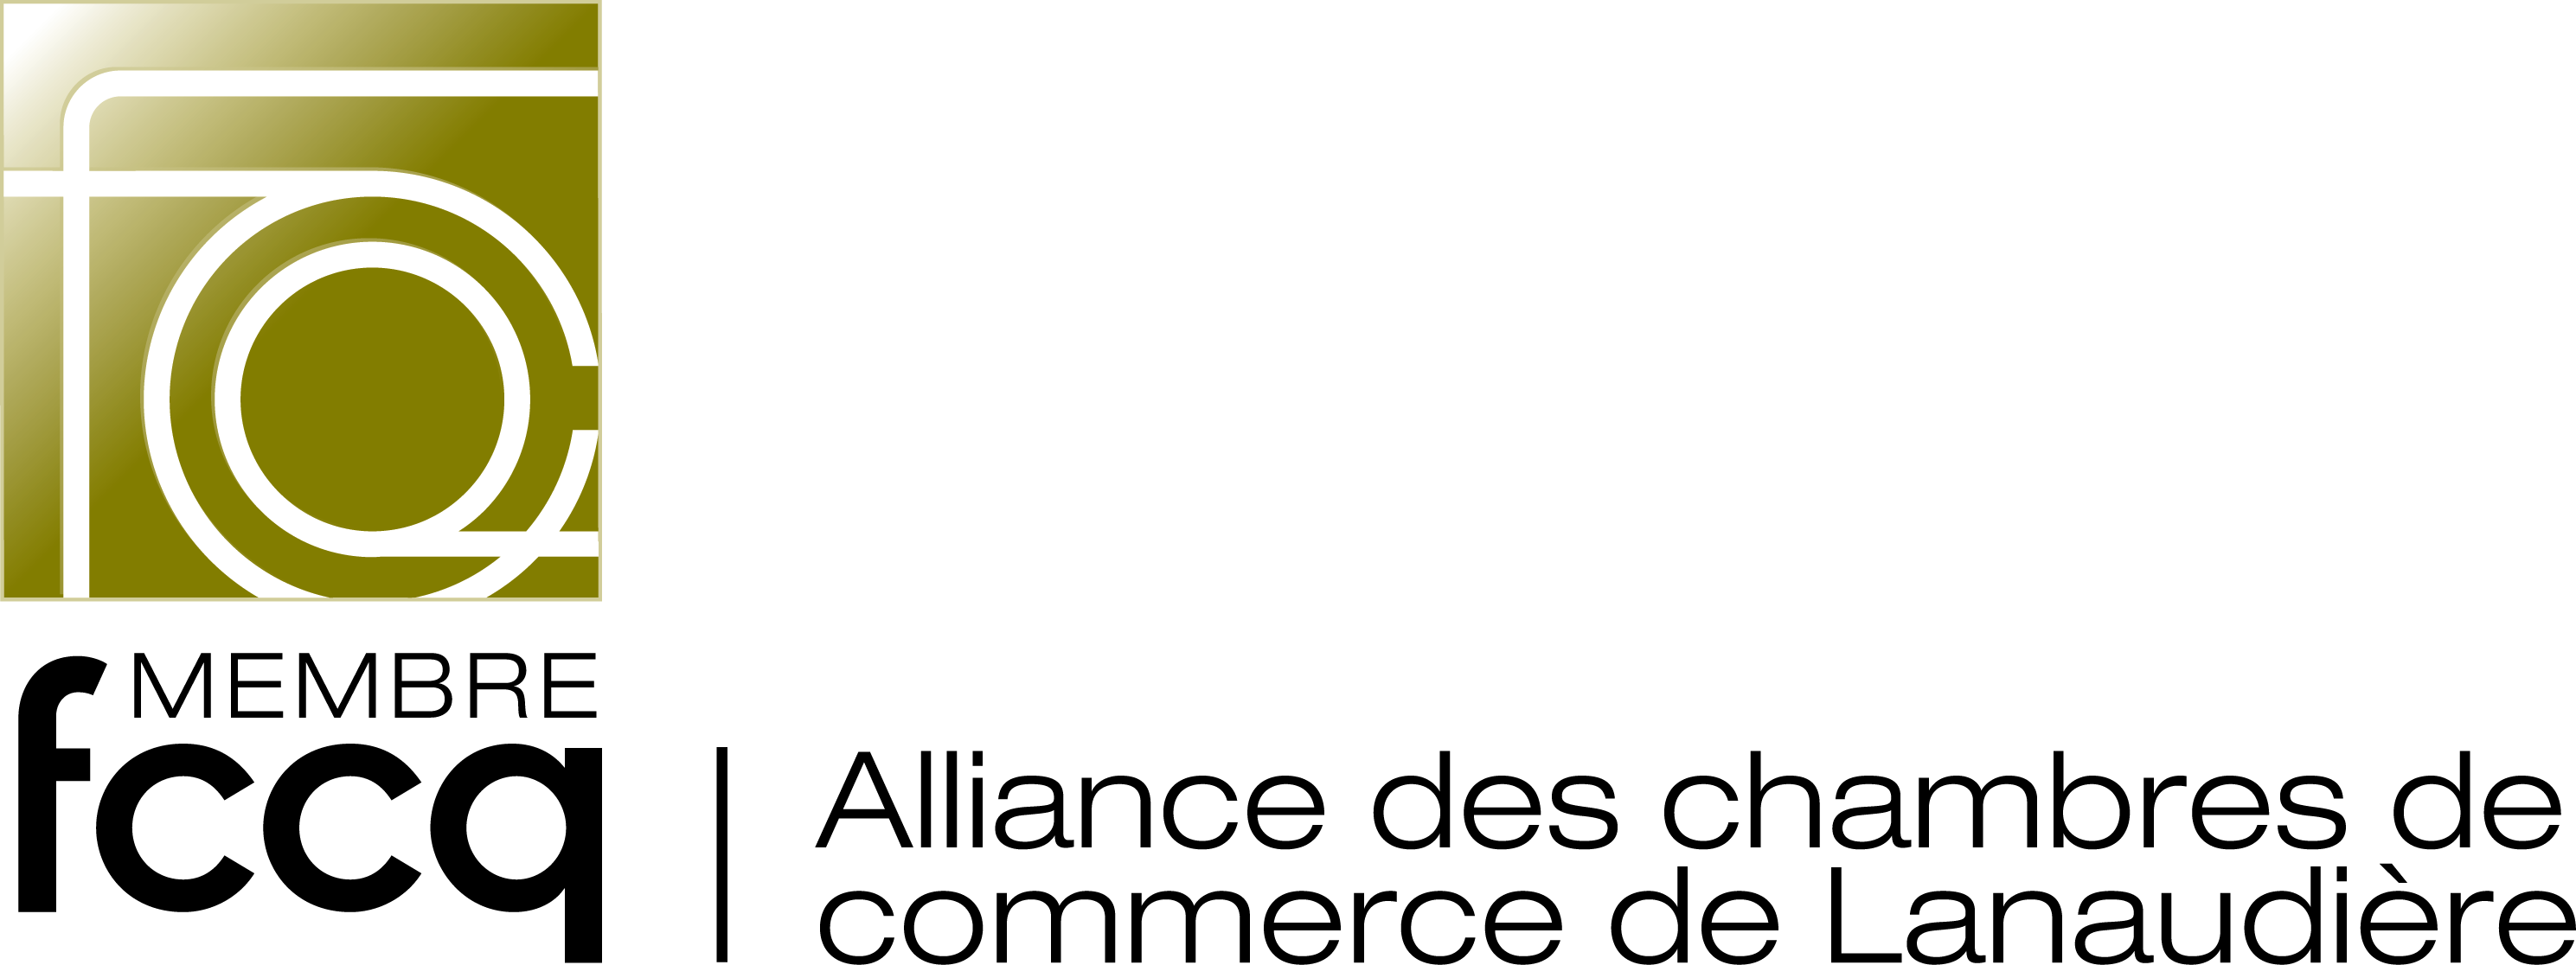 Alliance des chambres de commerce de lanaudi re chambre for Chambre de commerce de rawdon